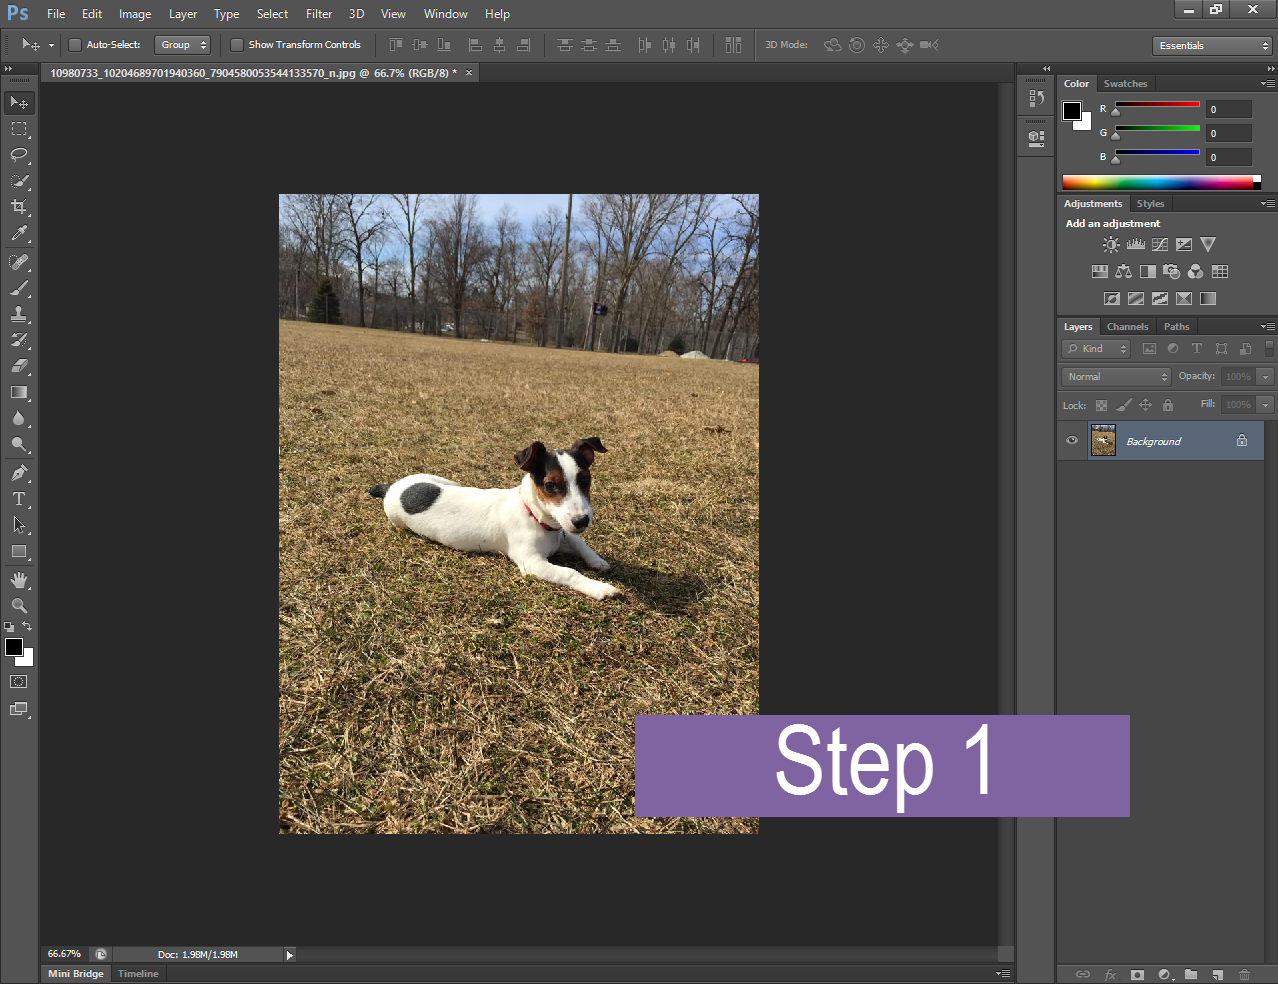 a screenshot of a puppy image that is open in Photoshop